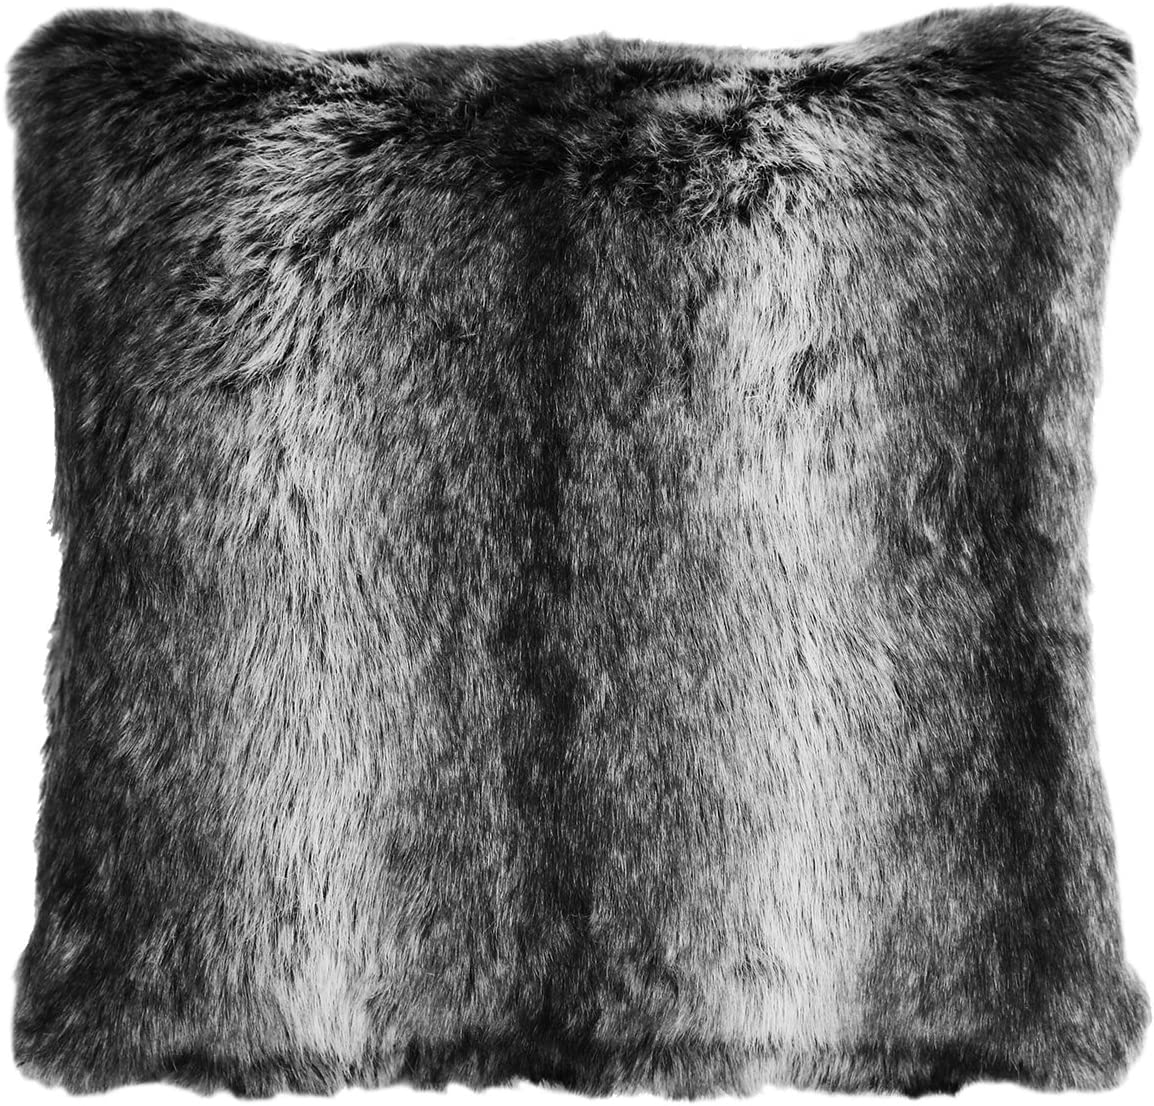 Carstens Wolf Faux Fur Square Pillow, Black